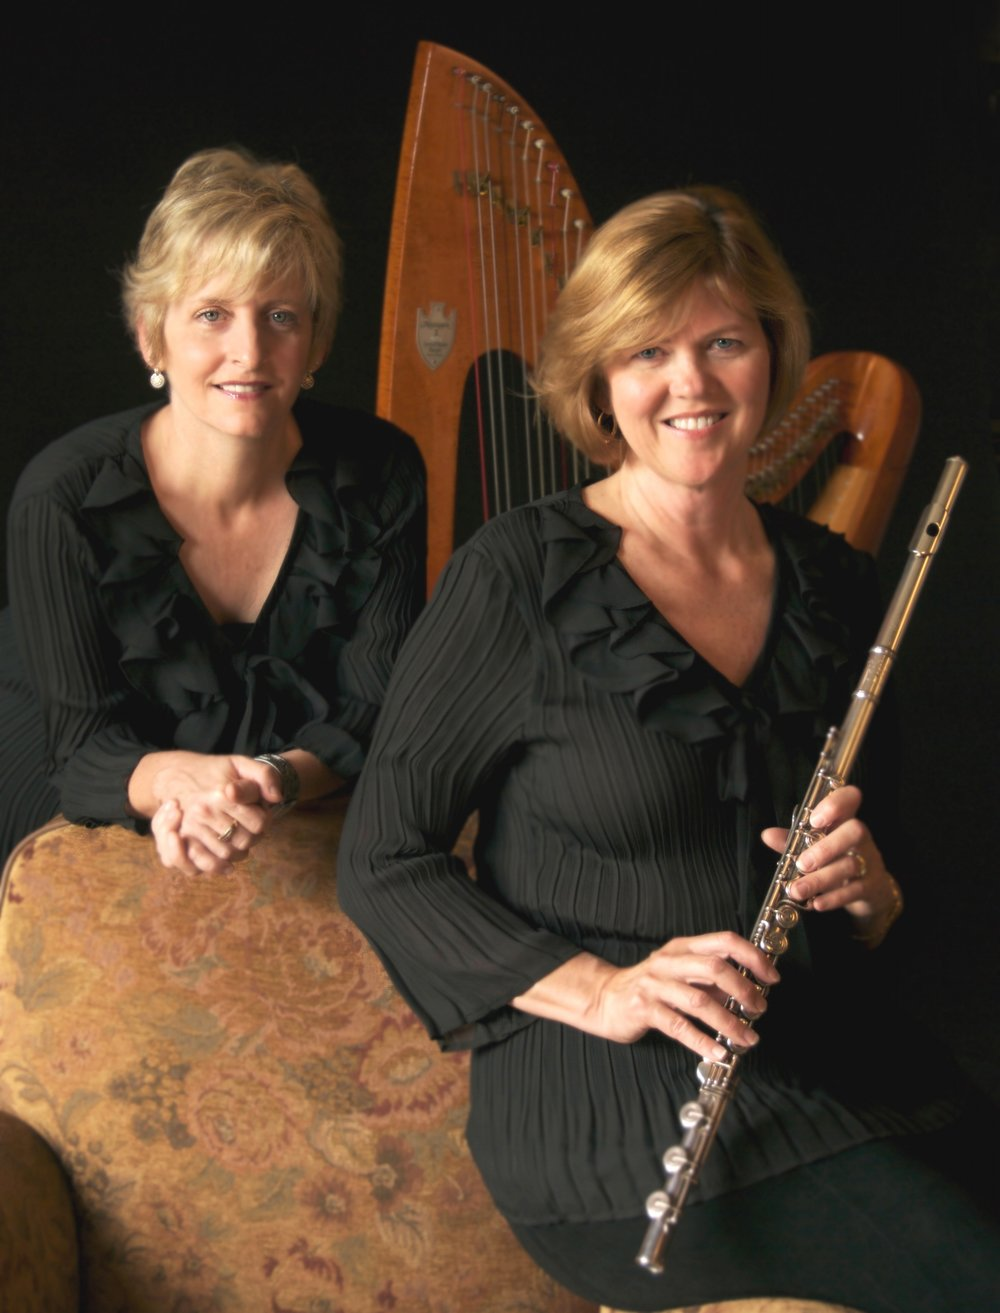 Denise Baxter-Yoder (L) and Suzanne Williams (R)